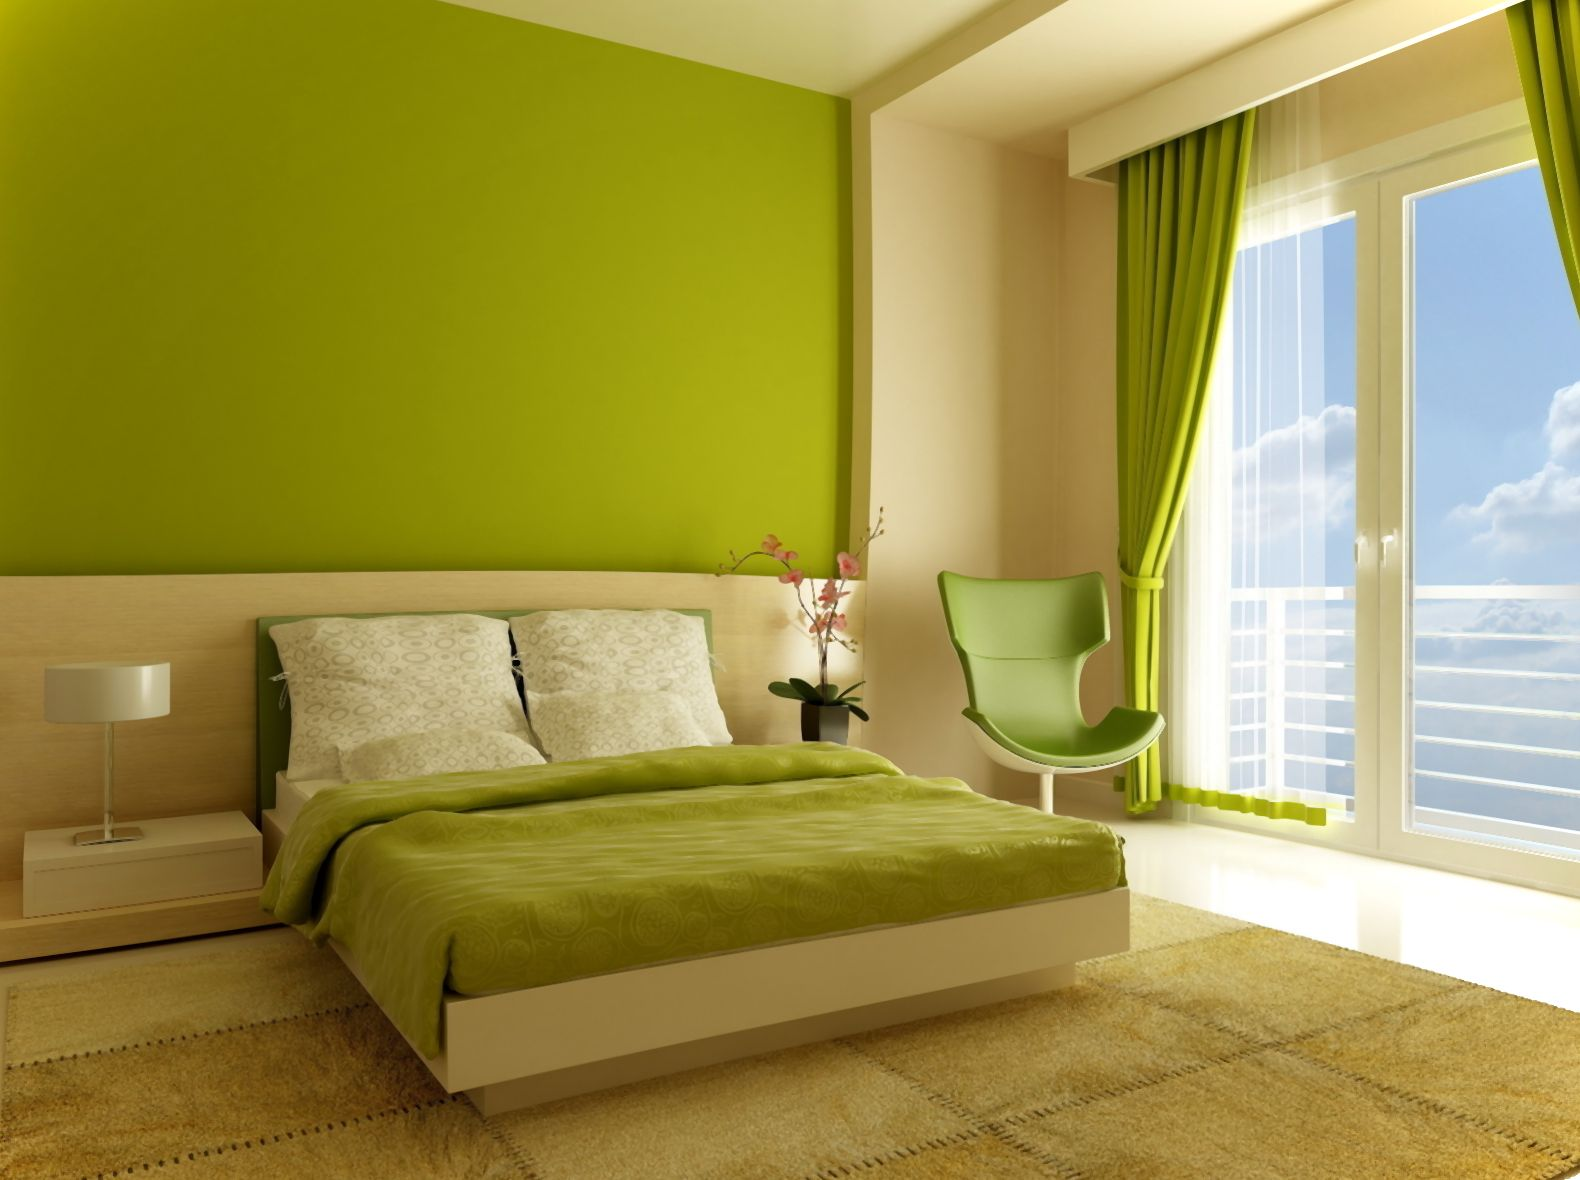 Lime green paint colors - Lime Green Painted Wall Lime Green Window Curtain Lime Green Swivel Chair Lime Green Bedsheet Green